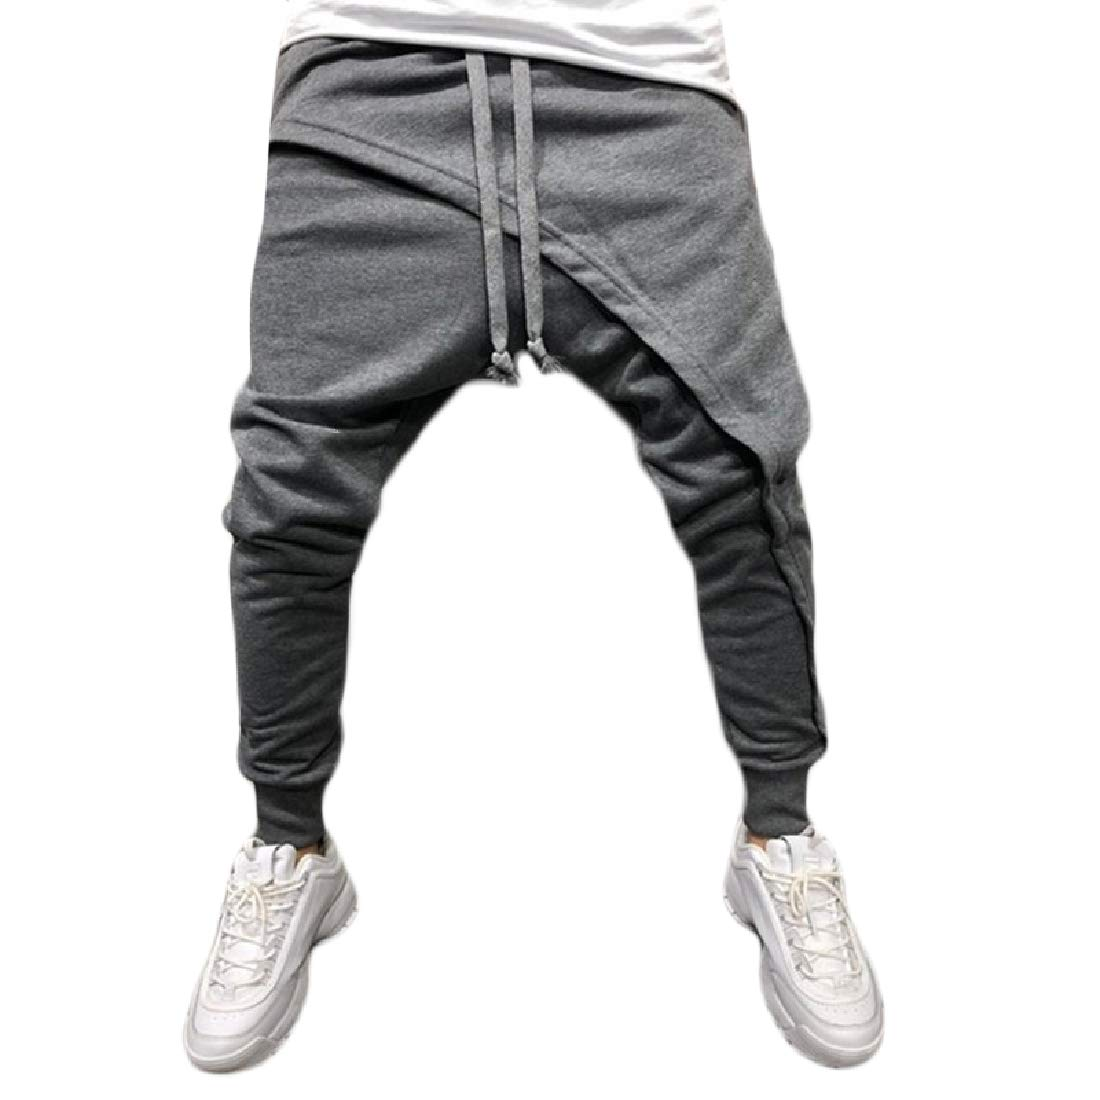 Kankanluck Mens Jogger Layered Hip-Hop Low Rise Casual Running Trousers